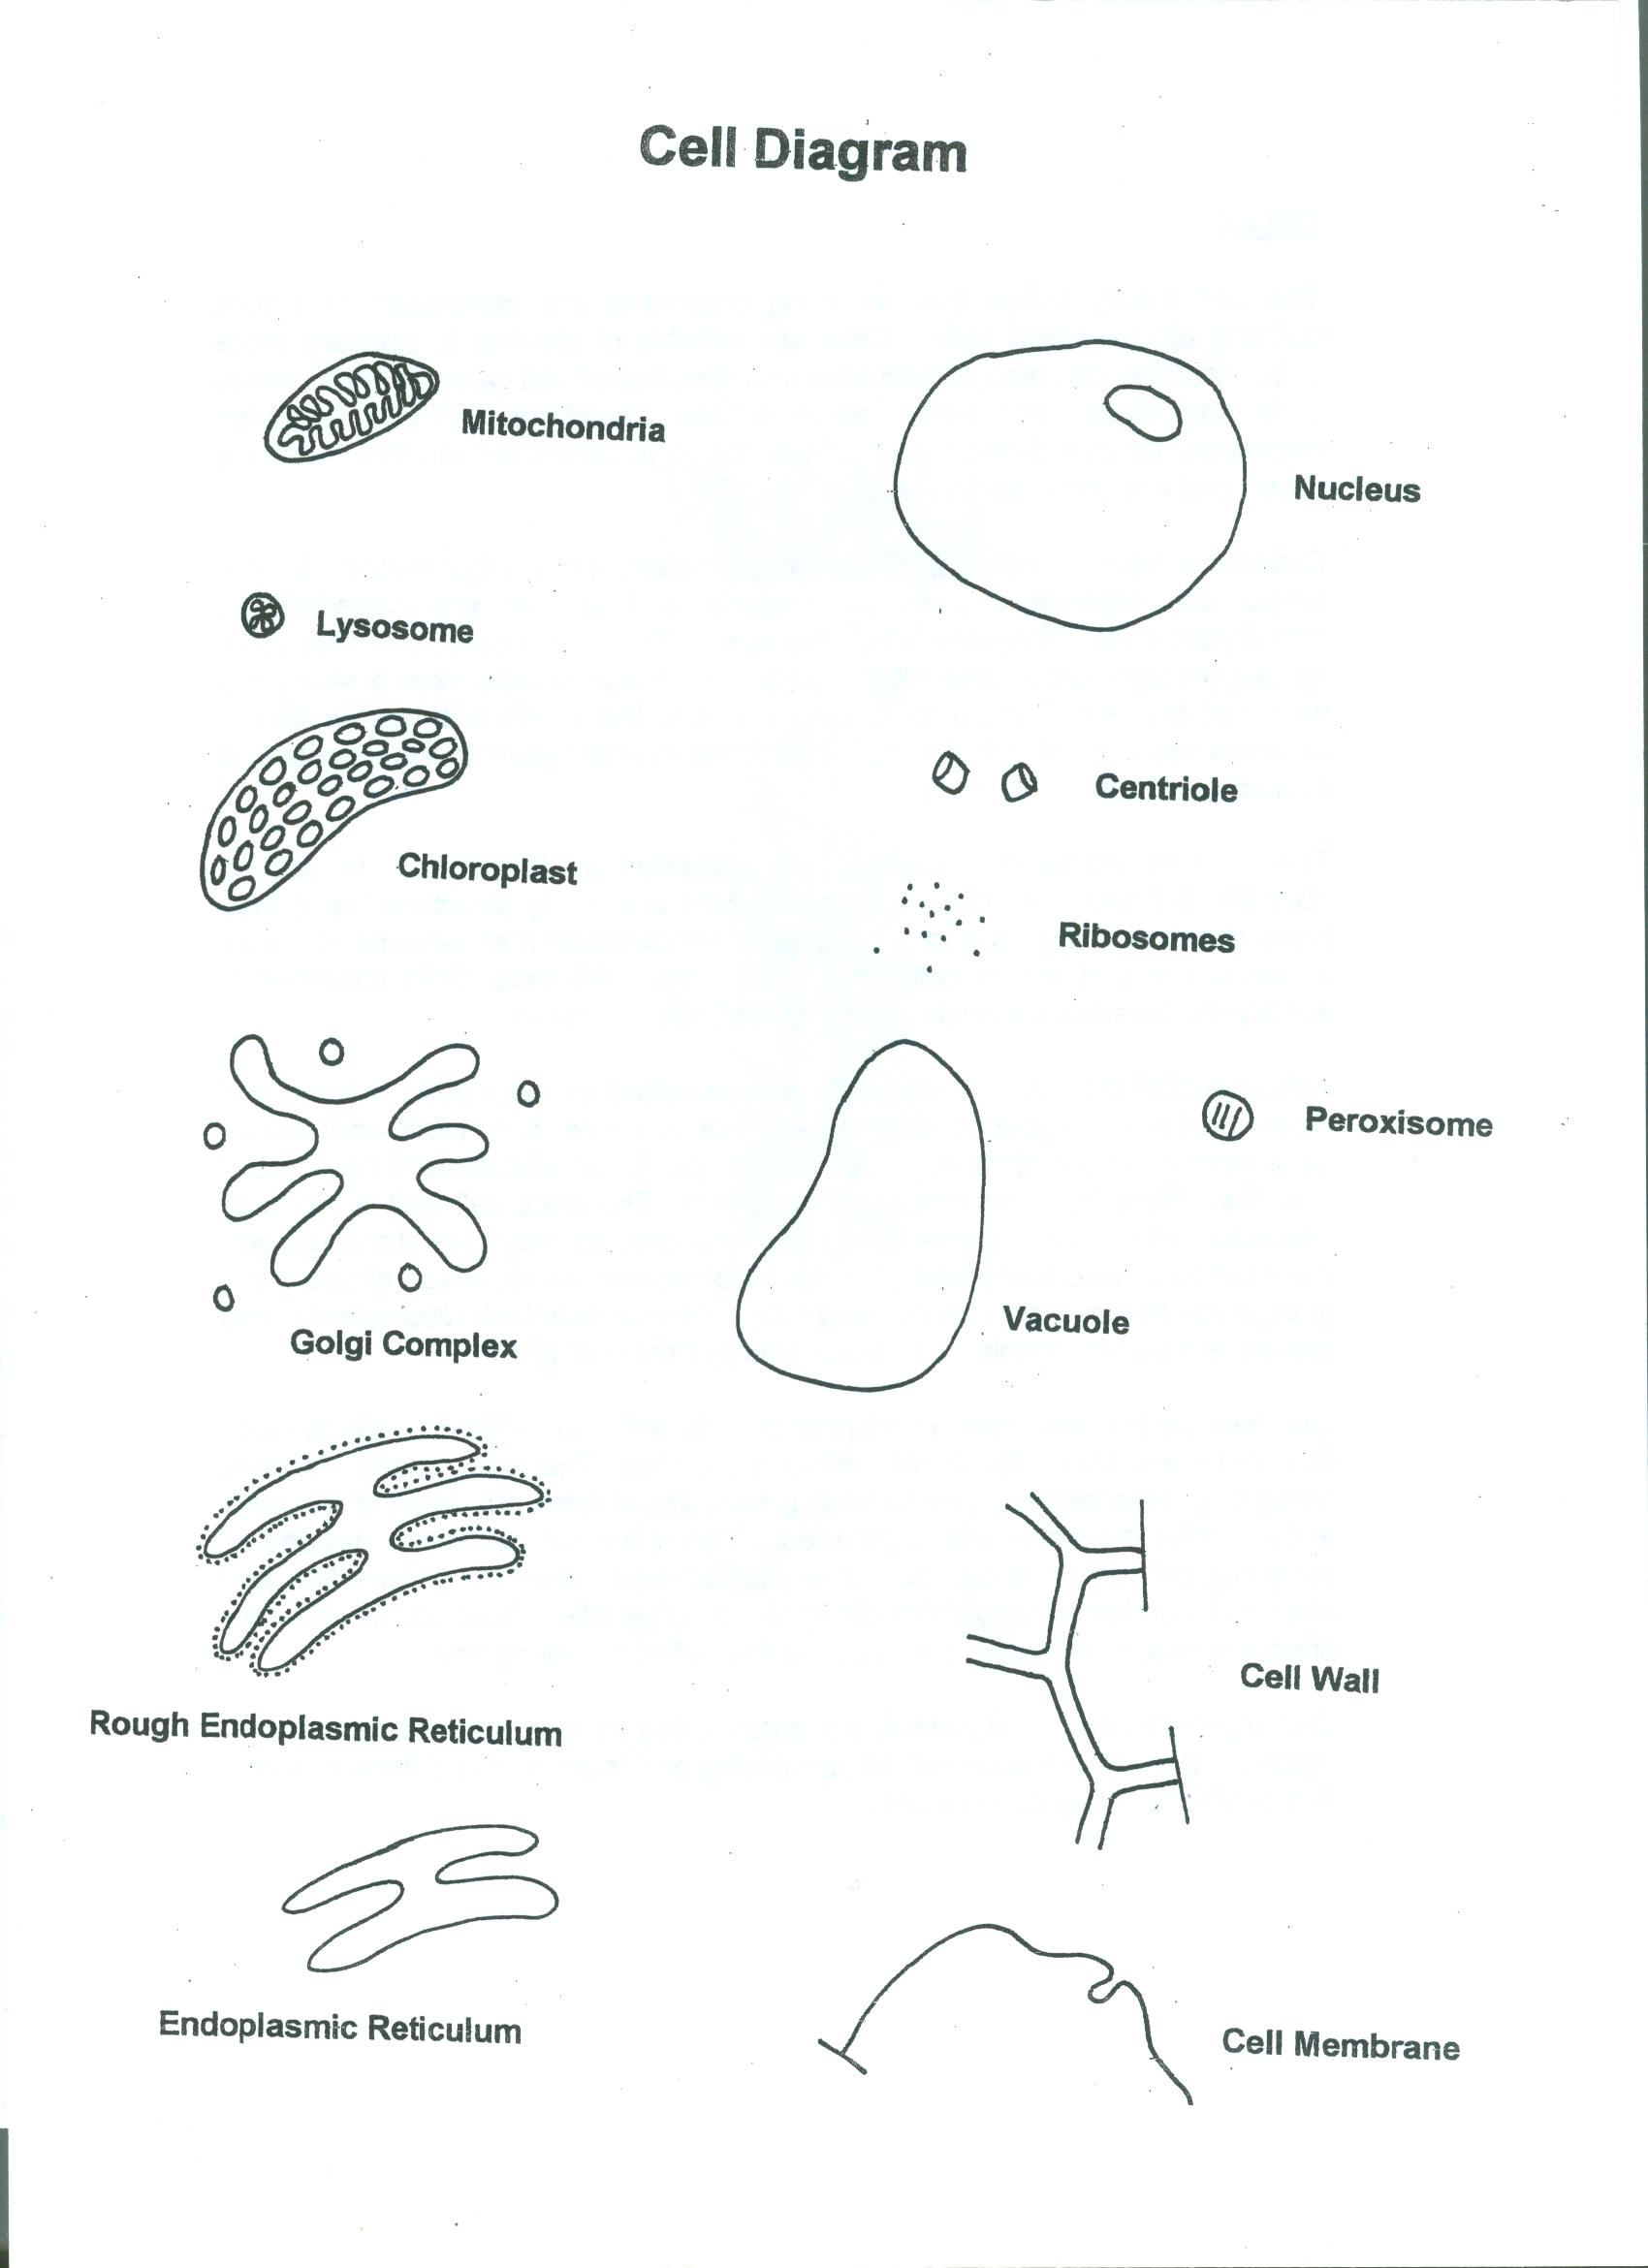 Human Cells Counting Worksheet